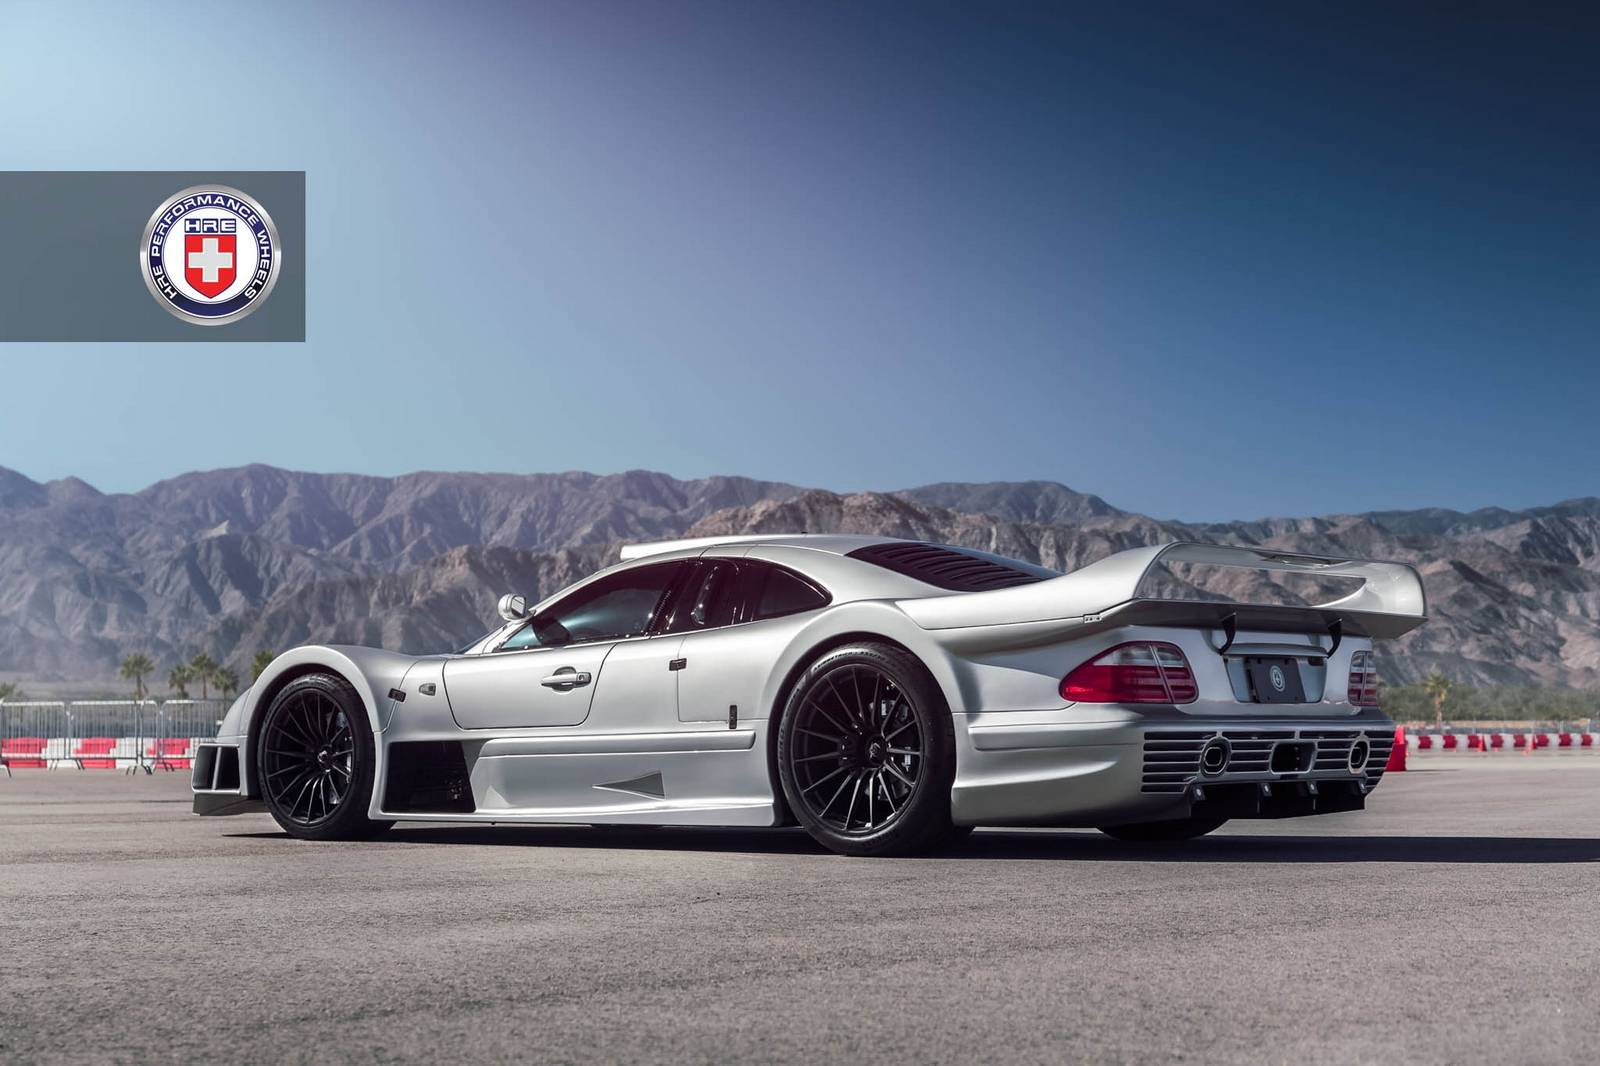 Stunning mercedes benz clk gtr with satin black hre wheels for Mercedes benz clk